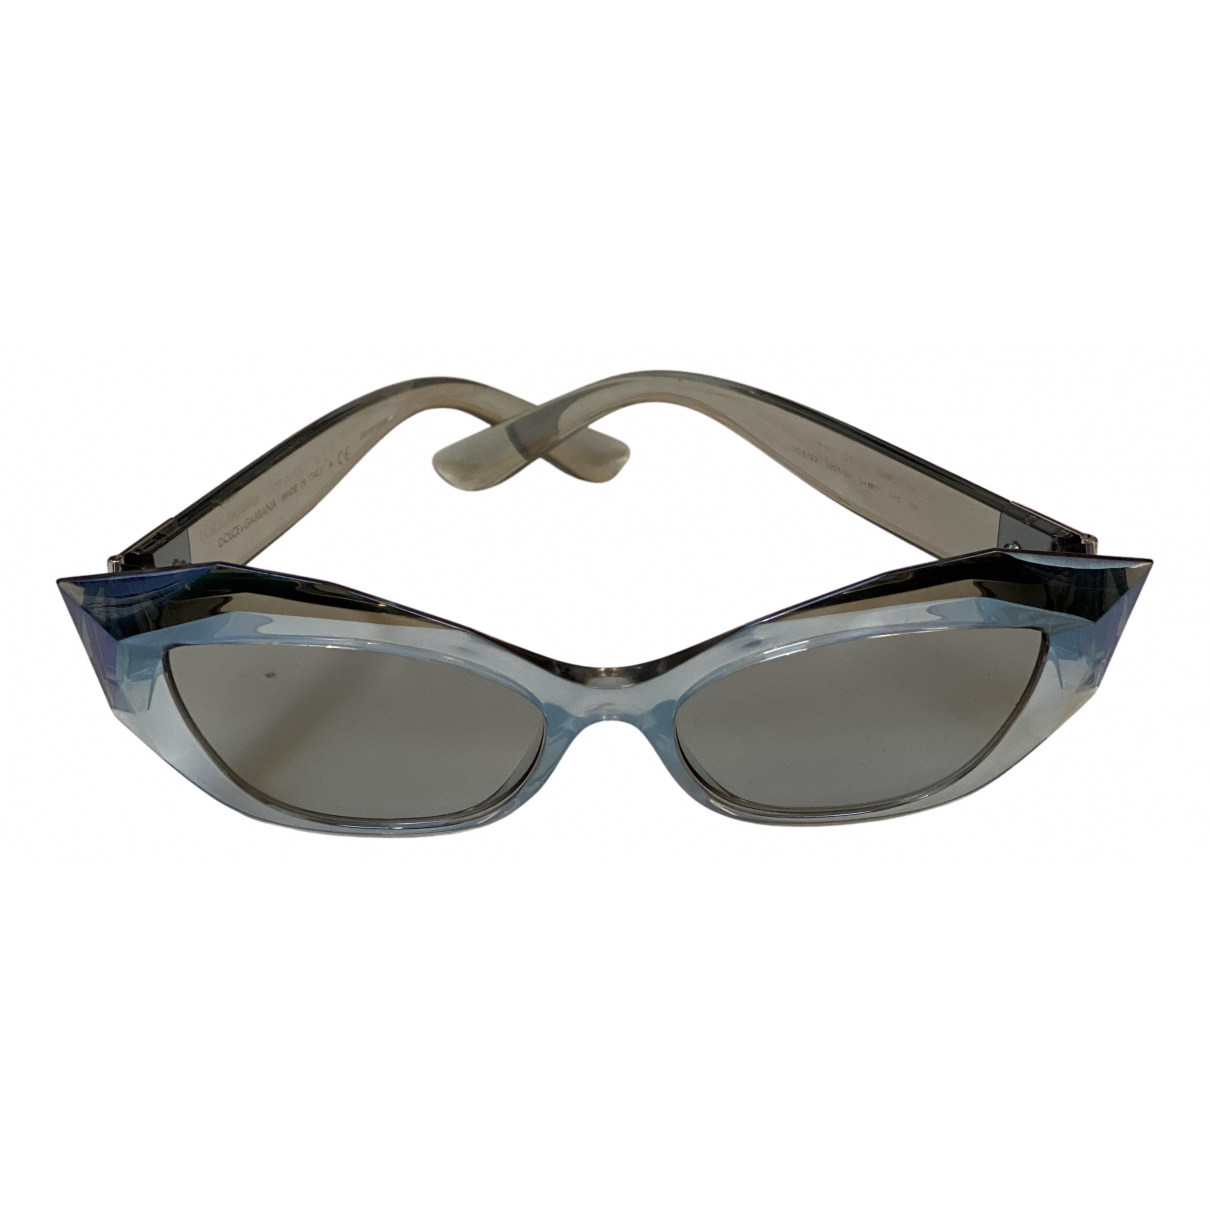 Dolce & Gabbana N Blue Sunglasses for Women N